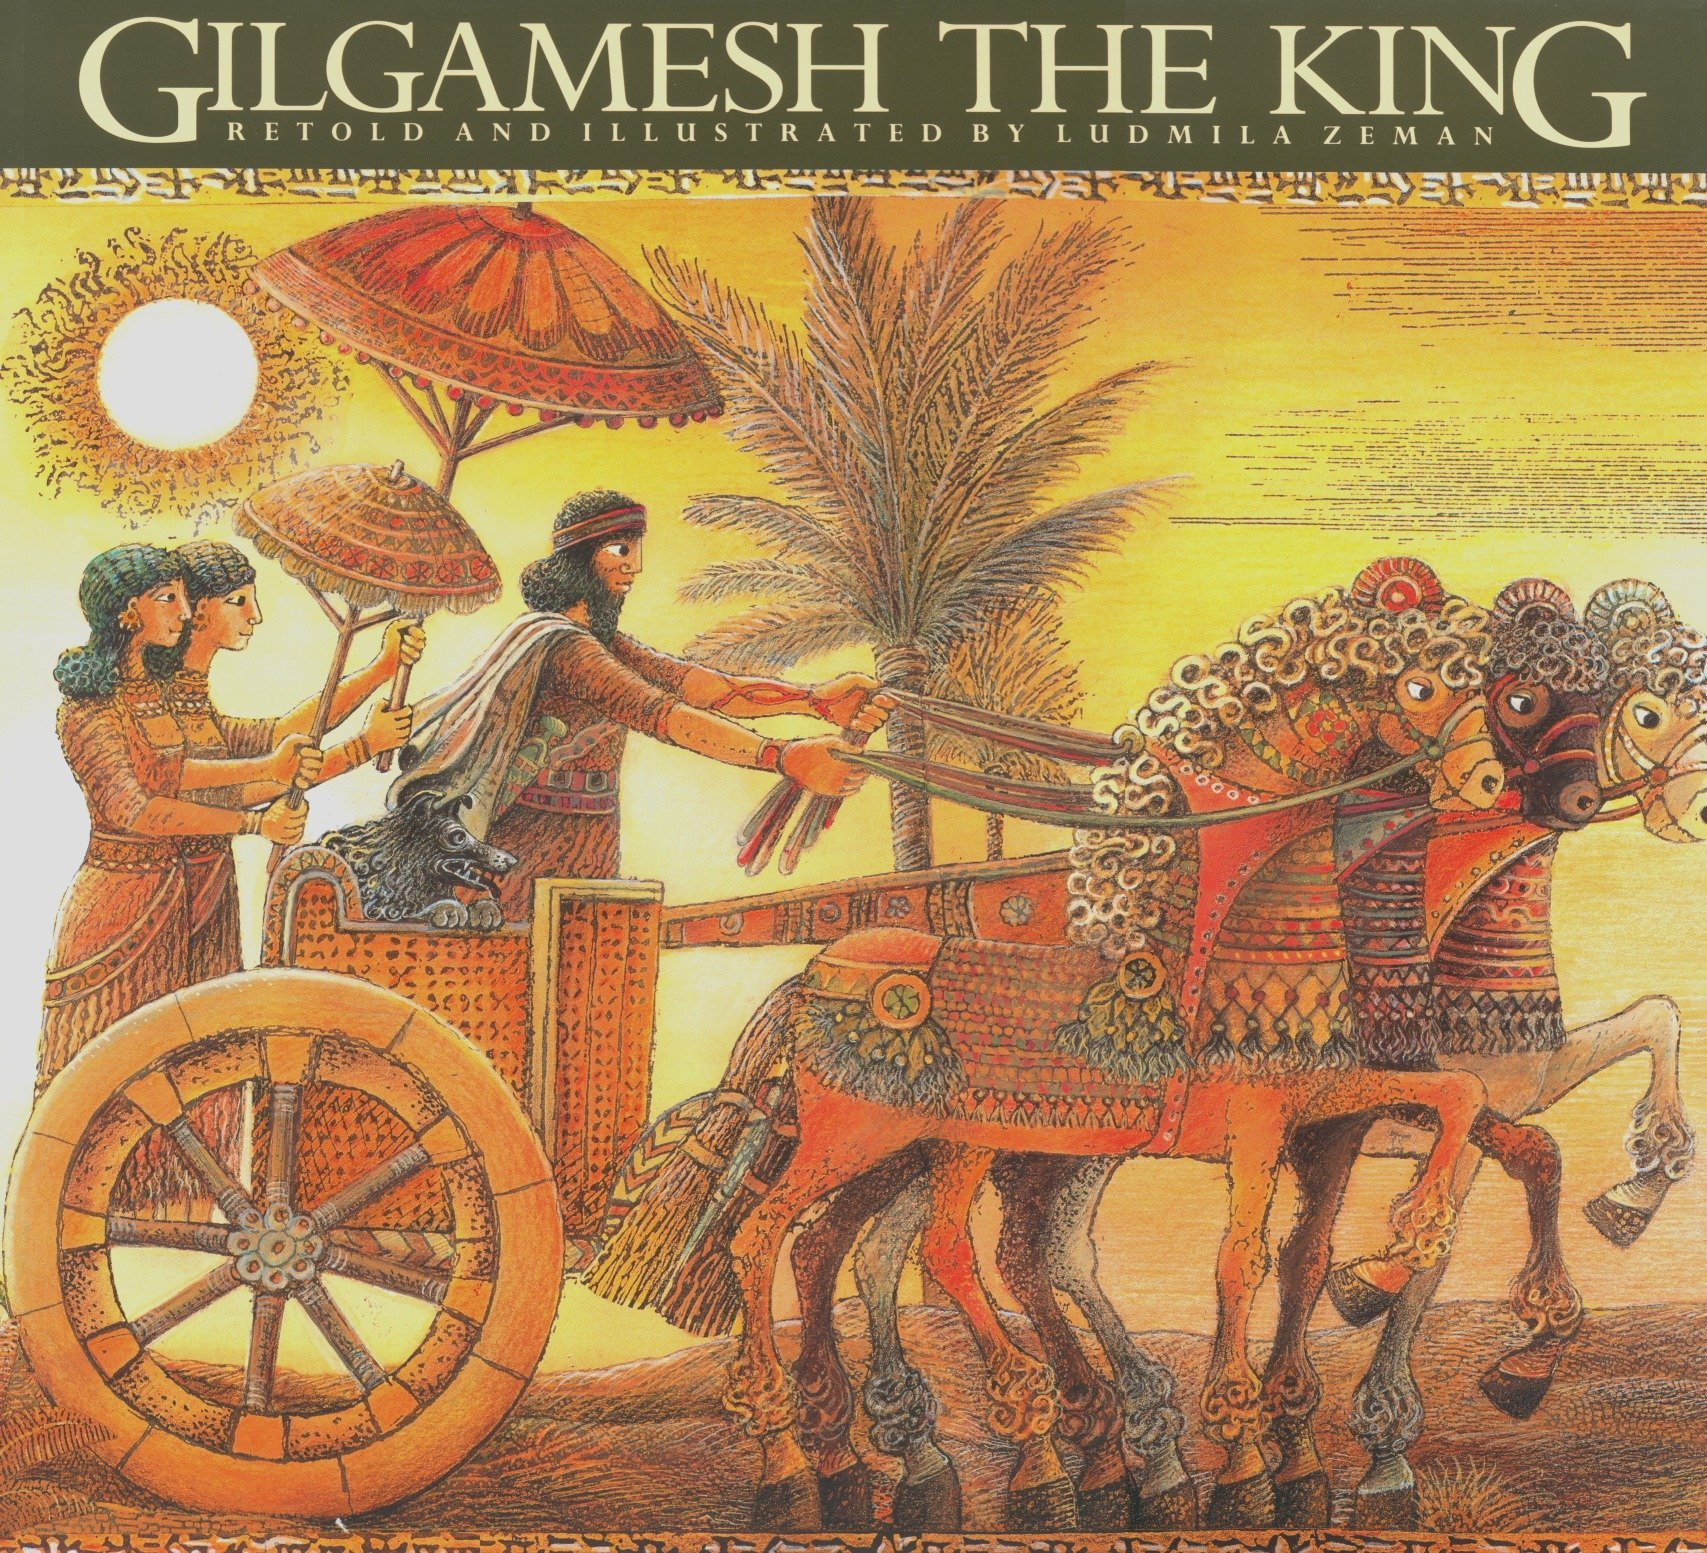 GILGAMESH THE KING EBOOK DOWNLOAD